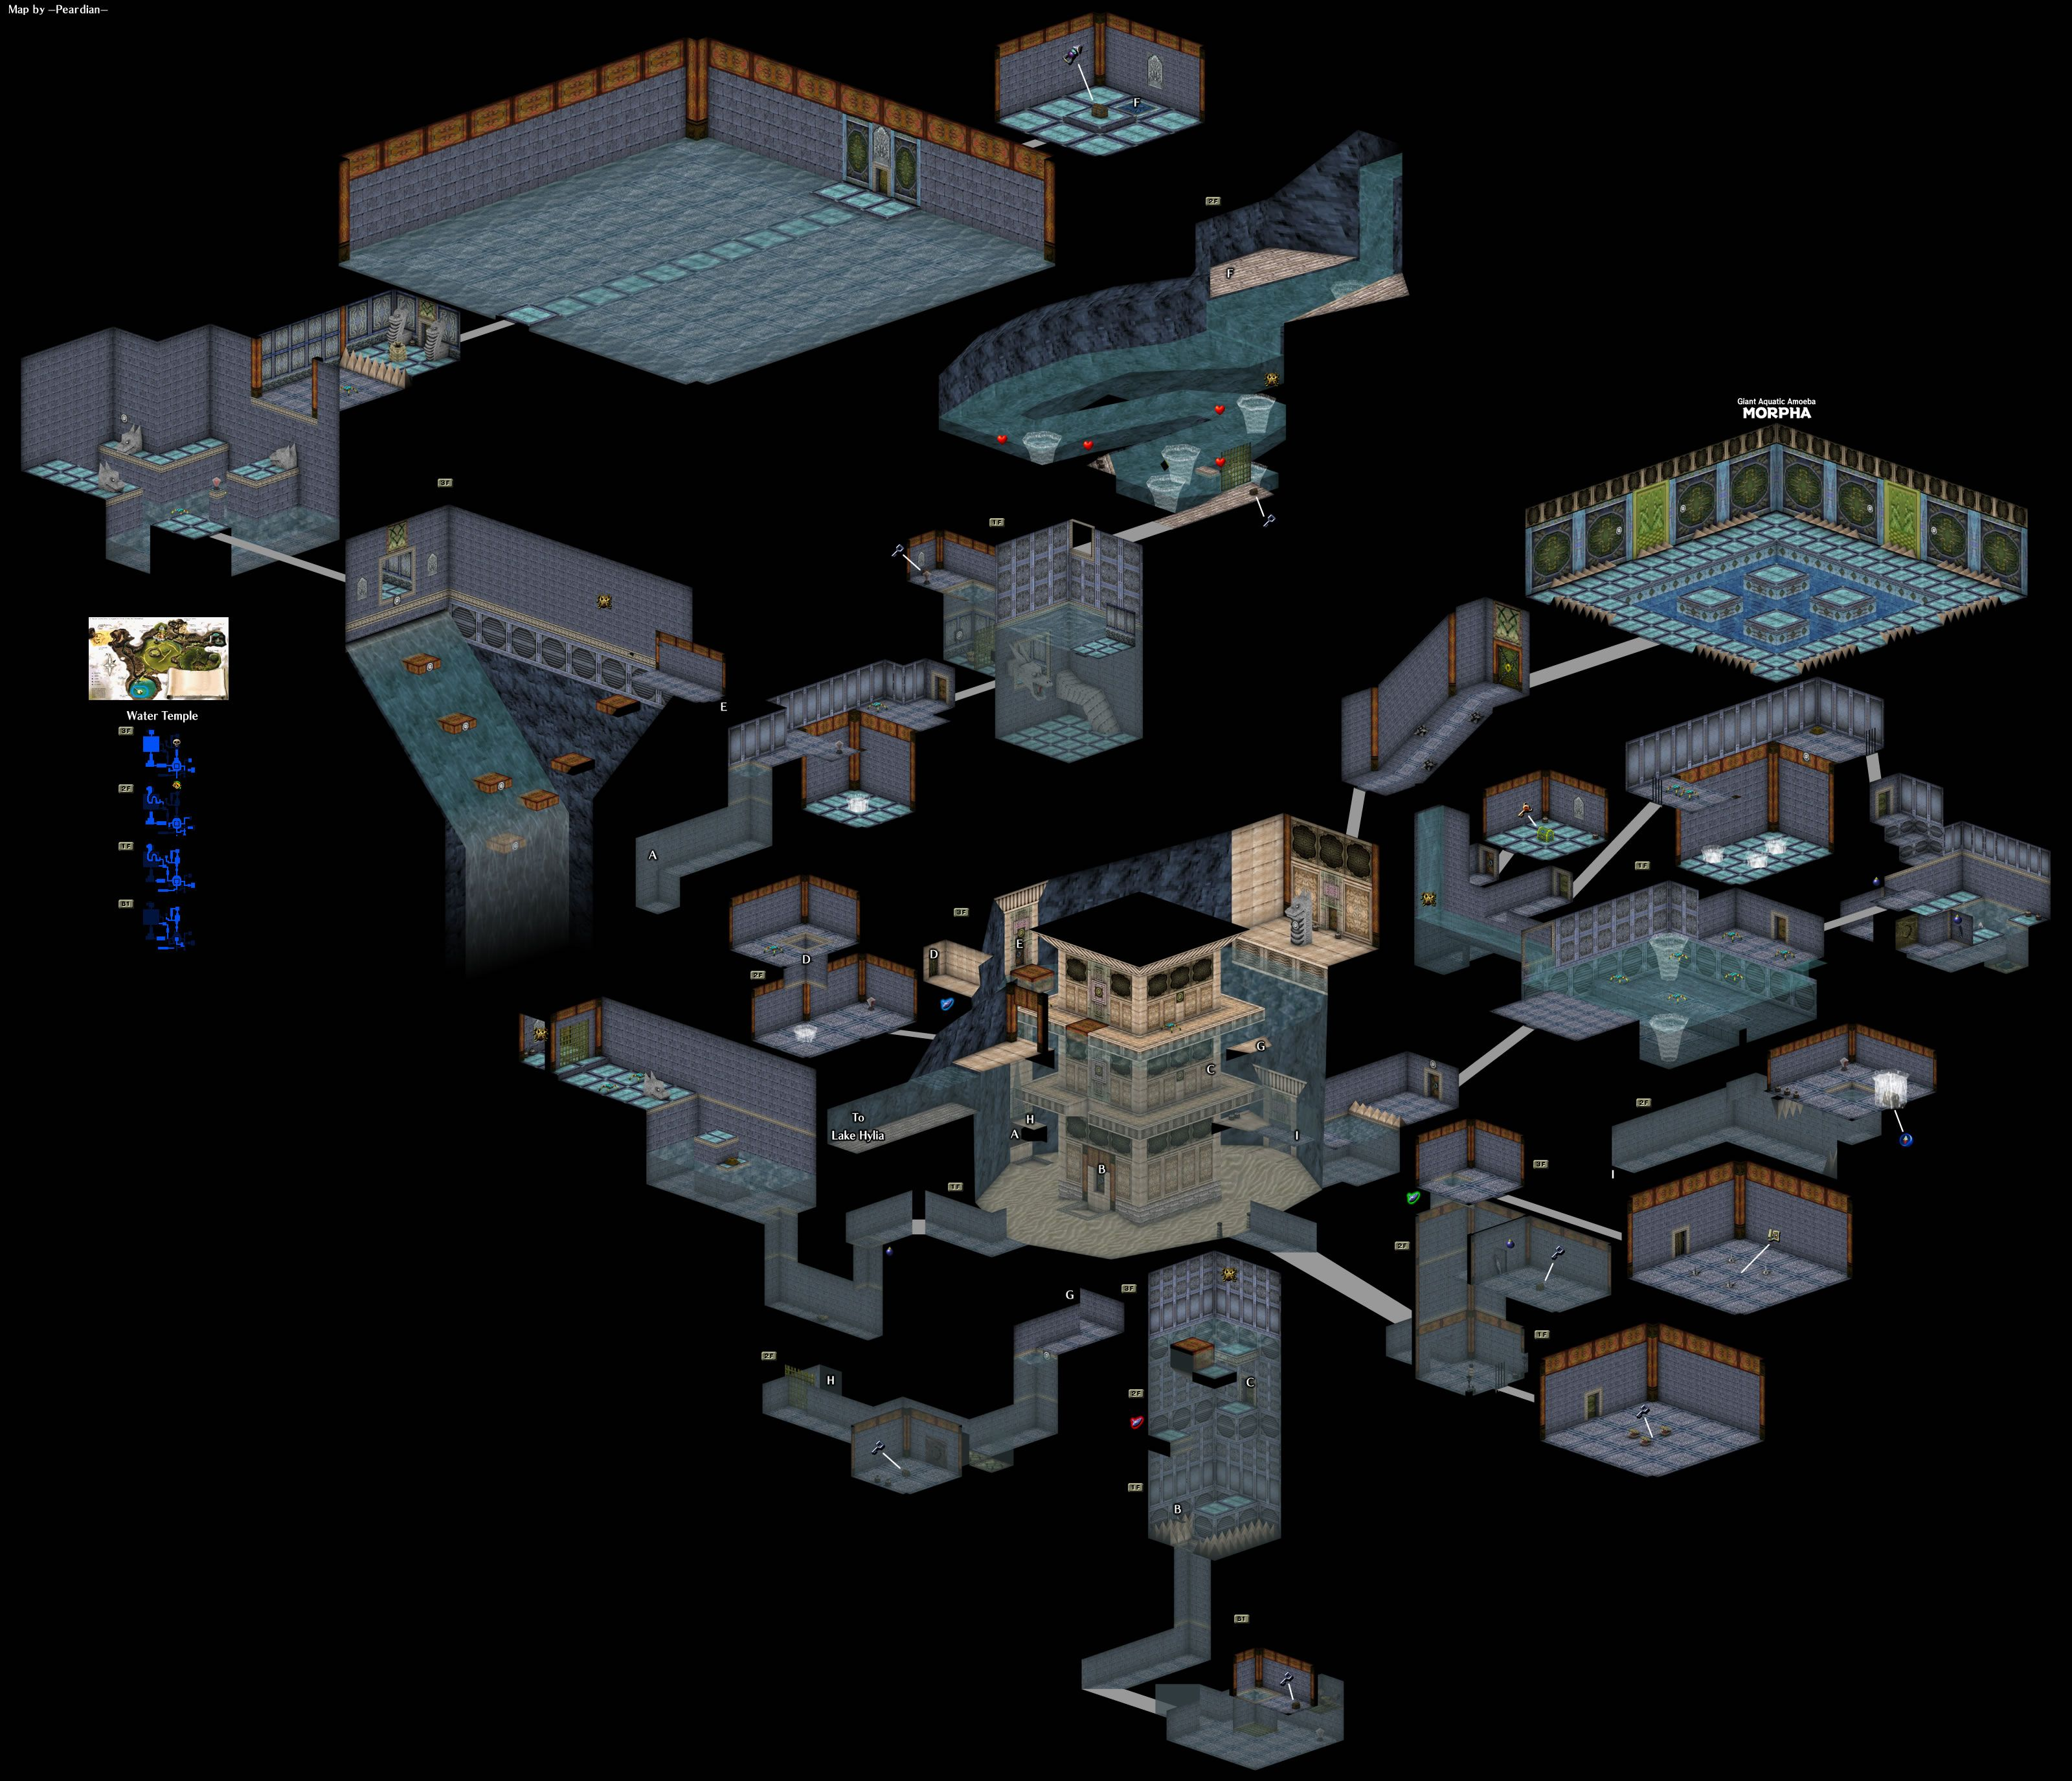 Zelda Ocarina of Time had some Beautiful Level Layouts [Spoilers